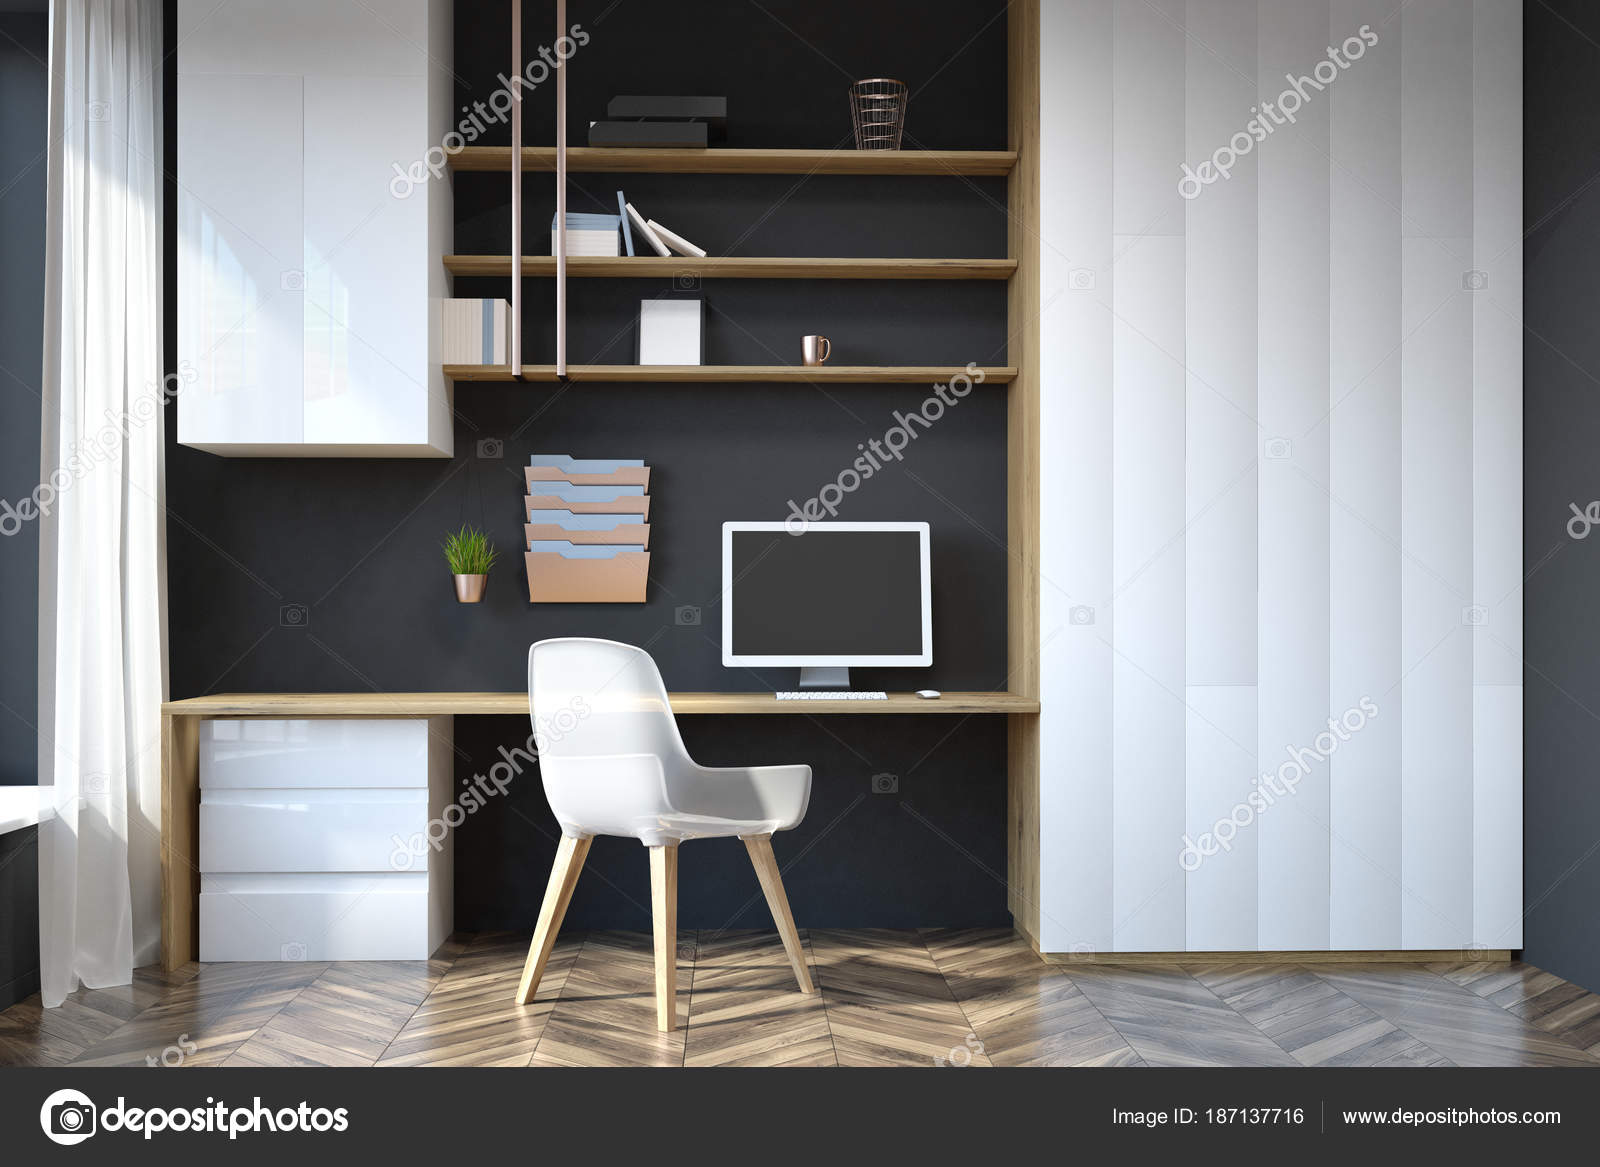 Home Office Arbeitsplatz Schwarz Home Office Arbeitsplatz Stockfoto Denisismagilov 187137716